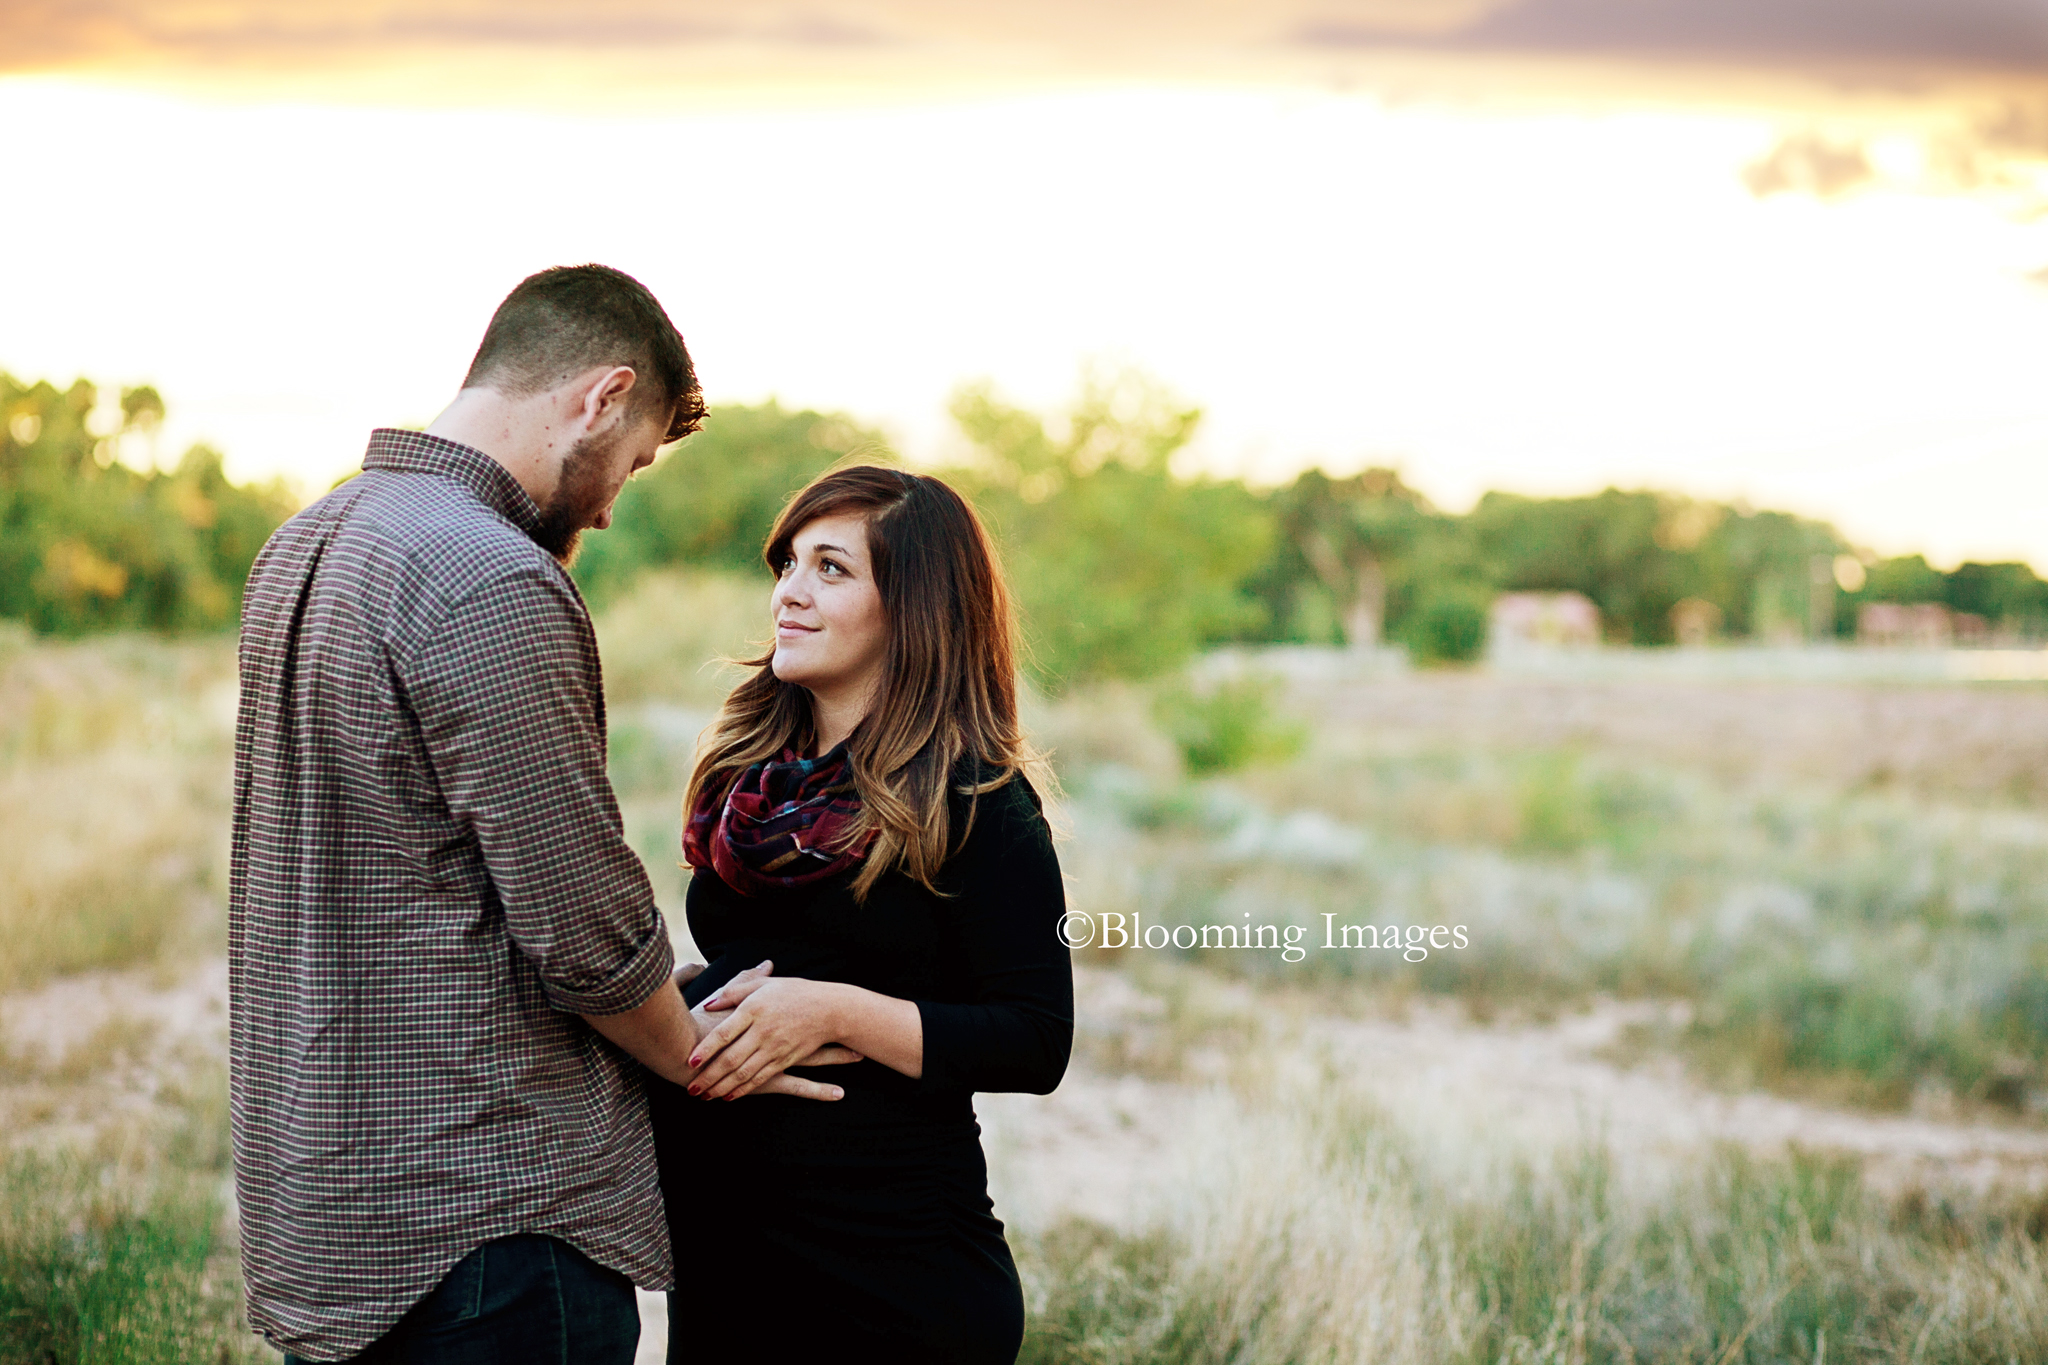 Albuquerque Maternity Photographers, Maternity Photographers in Albuquerque, Santa Fe Maternity Photographers, New Mexico Maternity Photographers